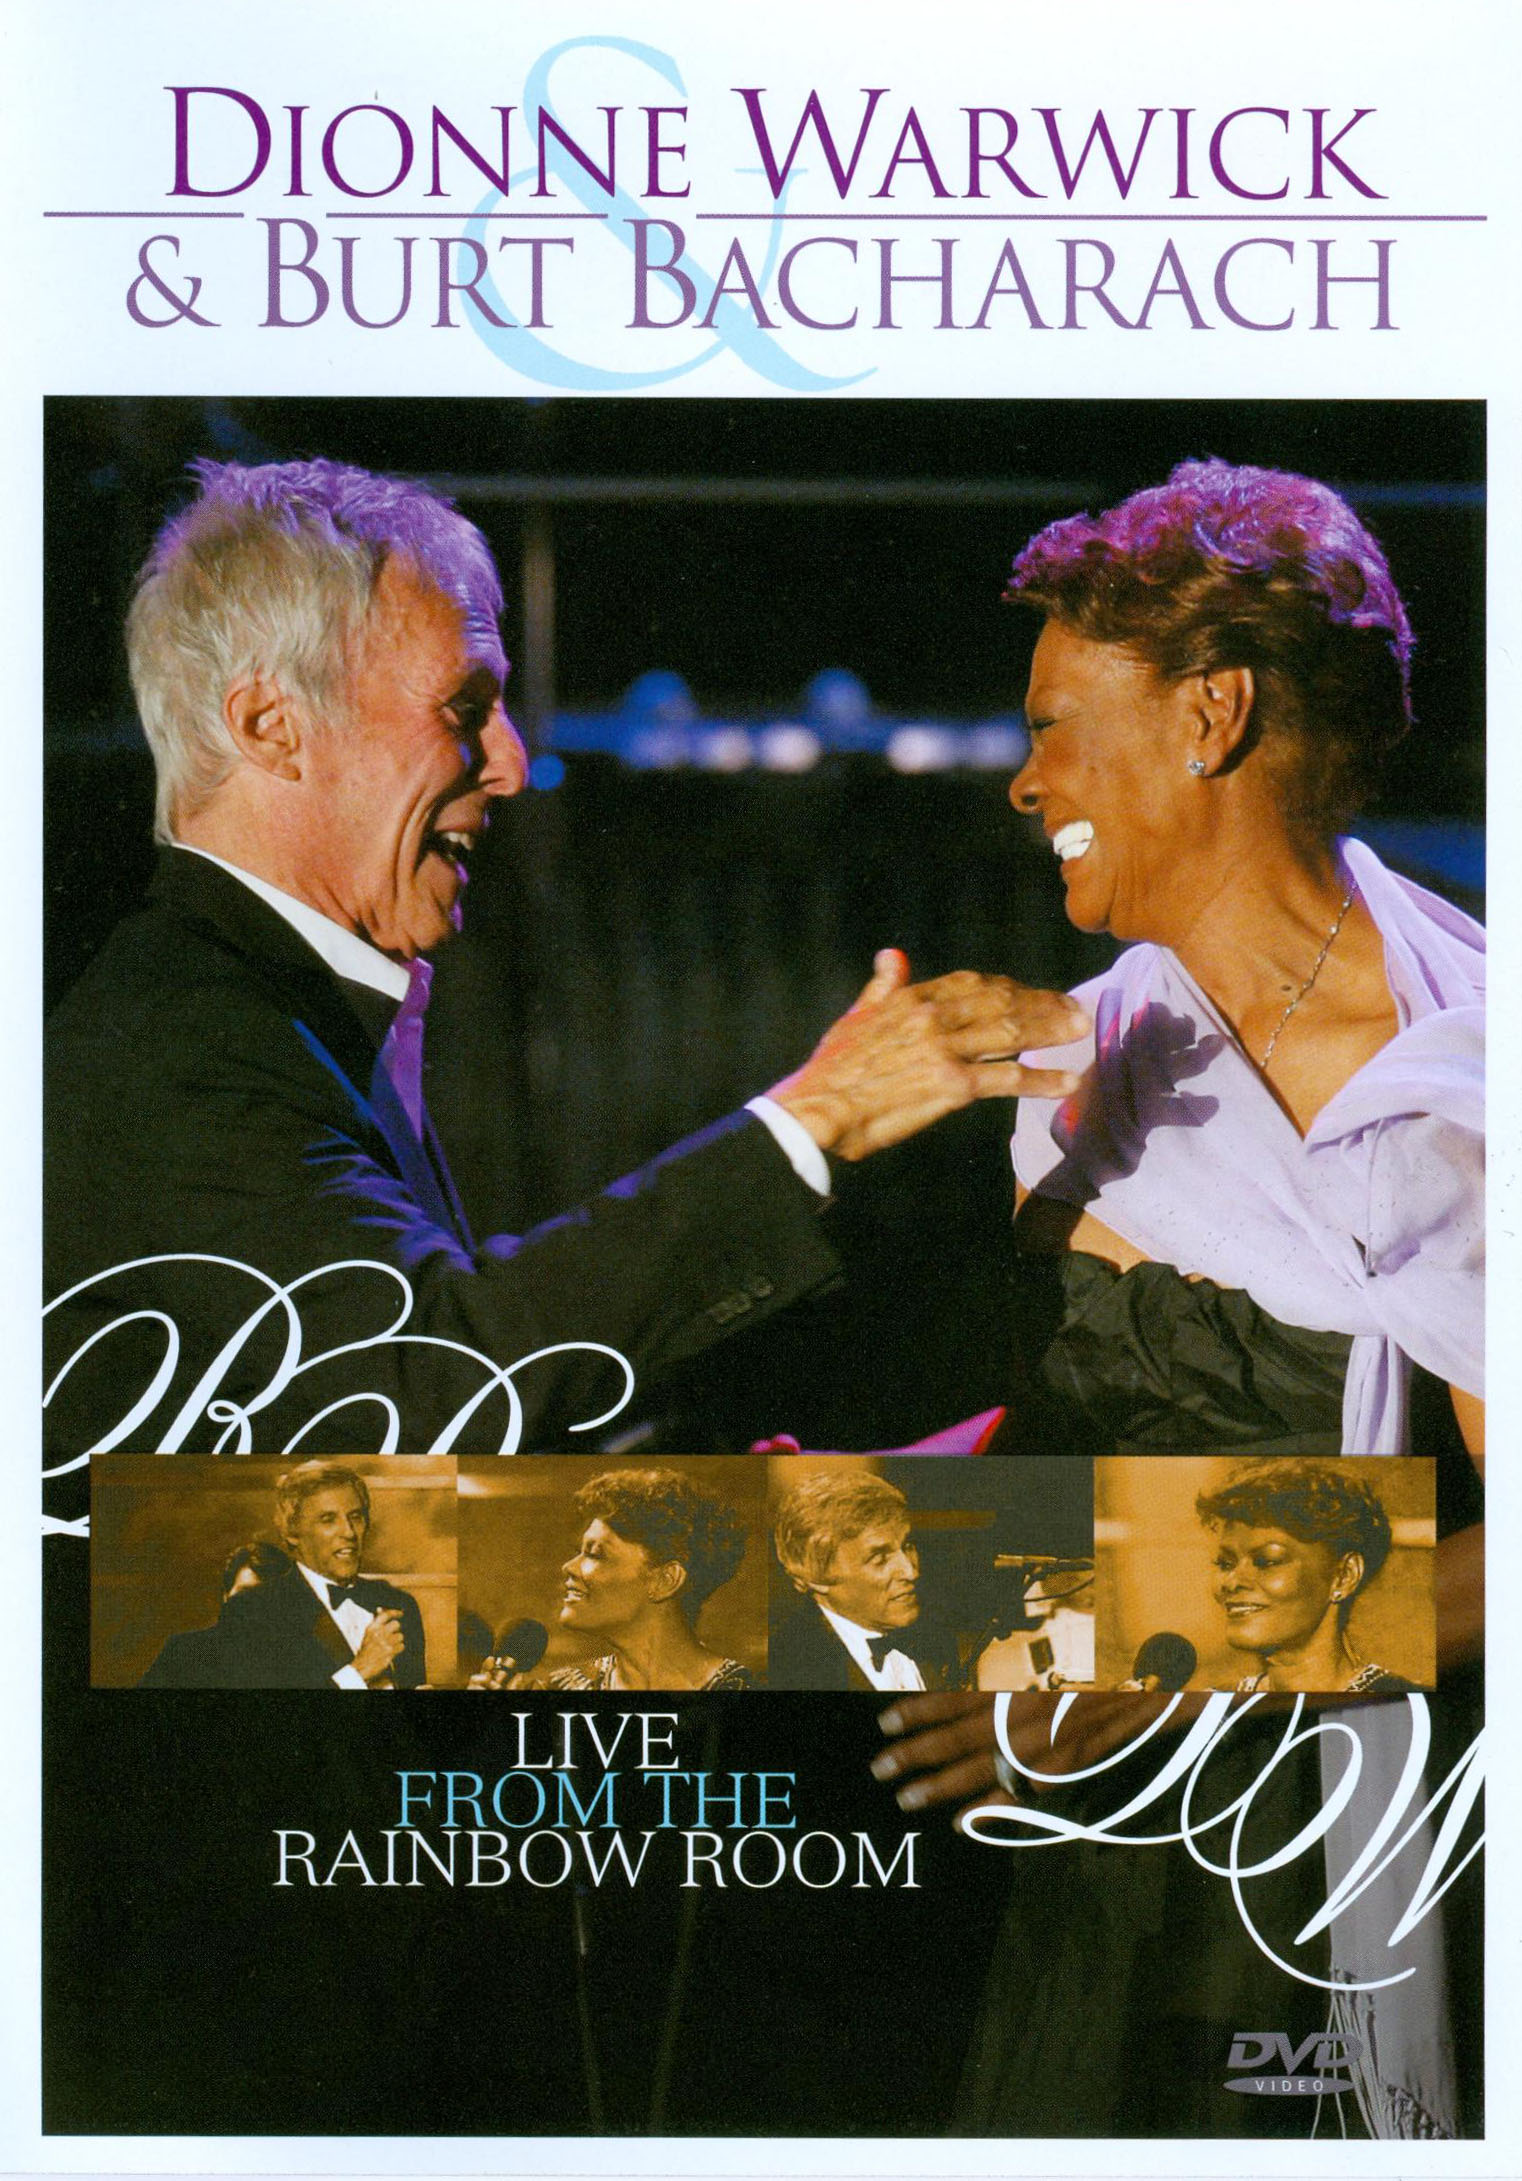 Dionne Warwick & Burt Bacharach: Live From The Rainbow Room